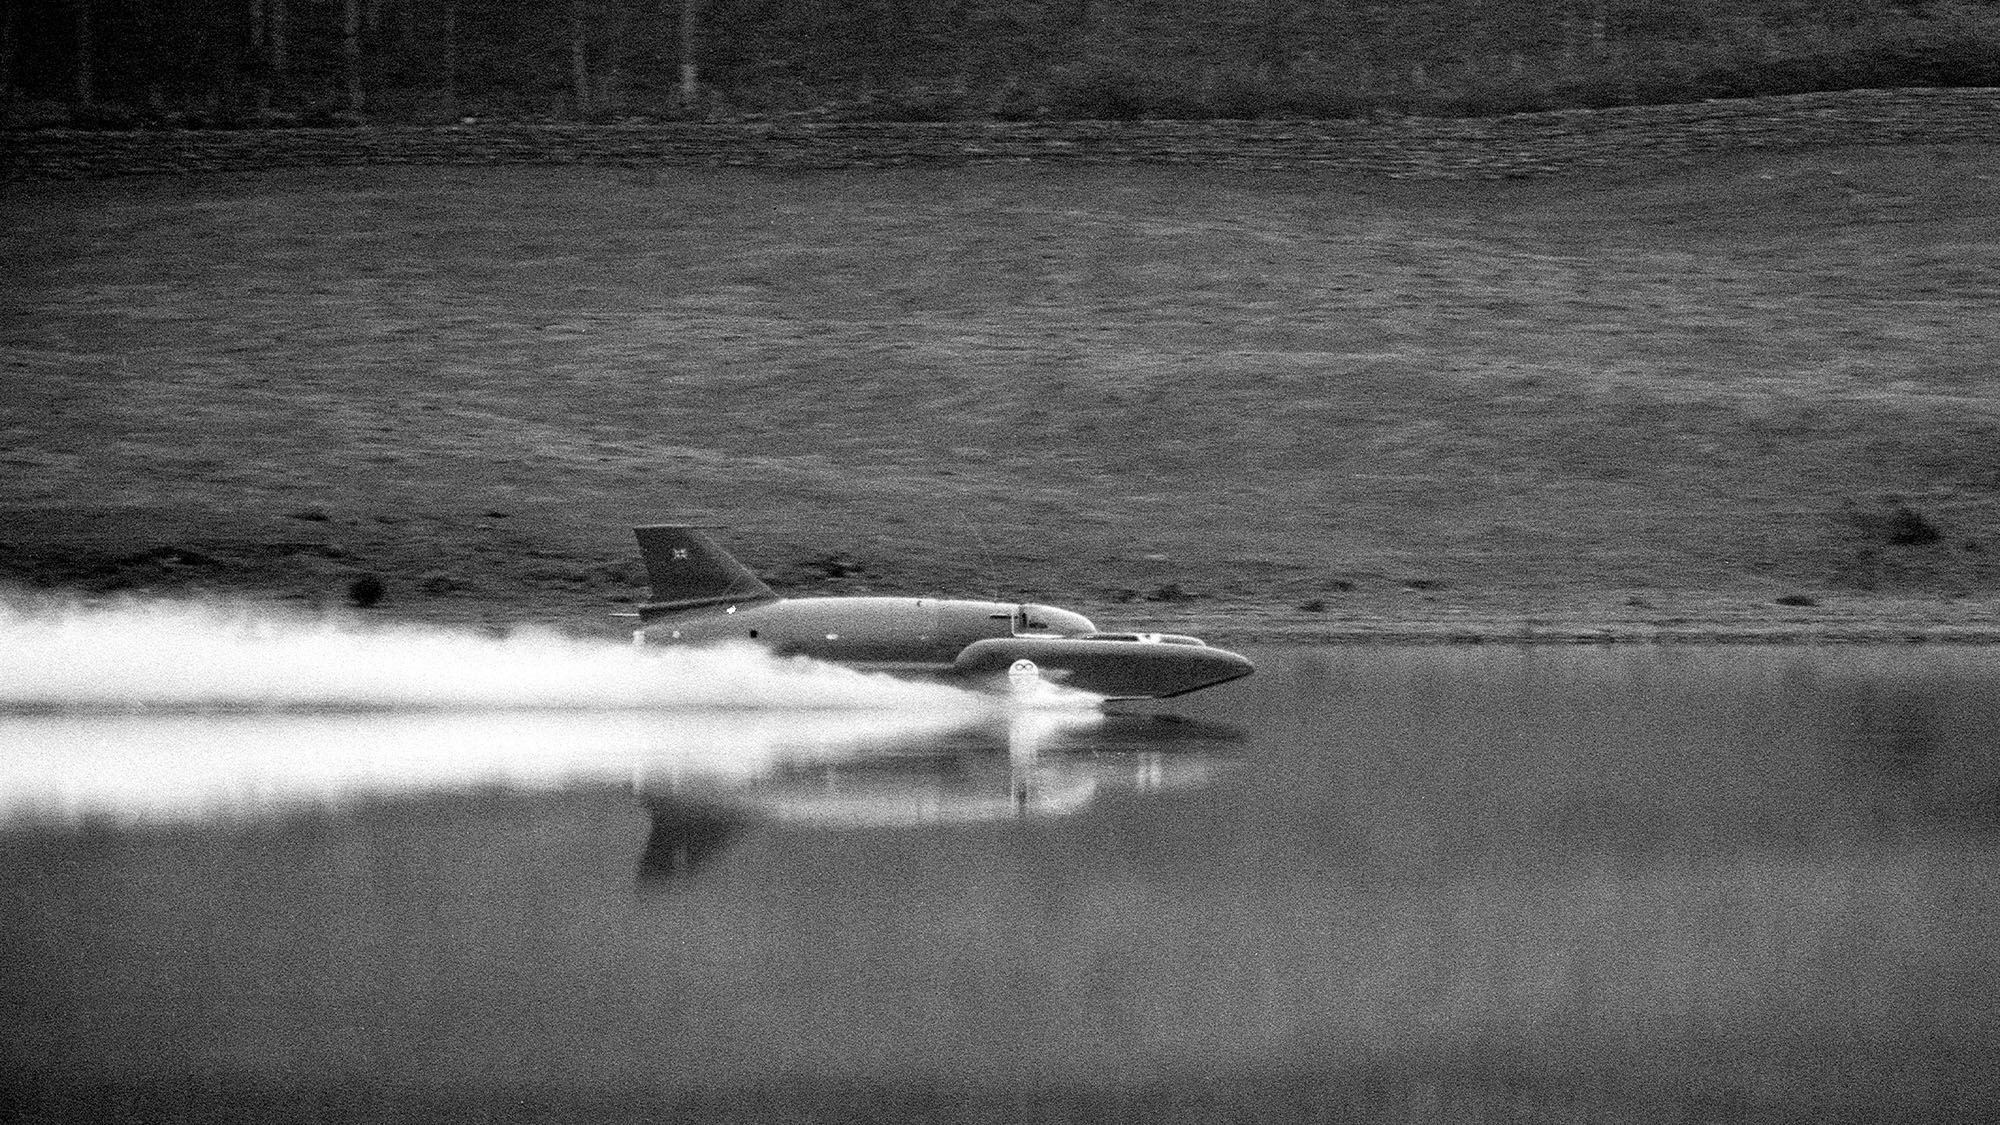 4th November 1966. Campbell was killed instantly on 4th January 1967 whilst attempting to break his own water-speed record of 276mph. His craft 'Bluebird' flipped into the air at around 300mph. (Photo by Sunday Mirror/Mirrorpix/Mirrorpix via Getty Images)